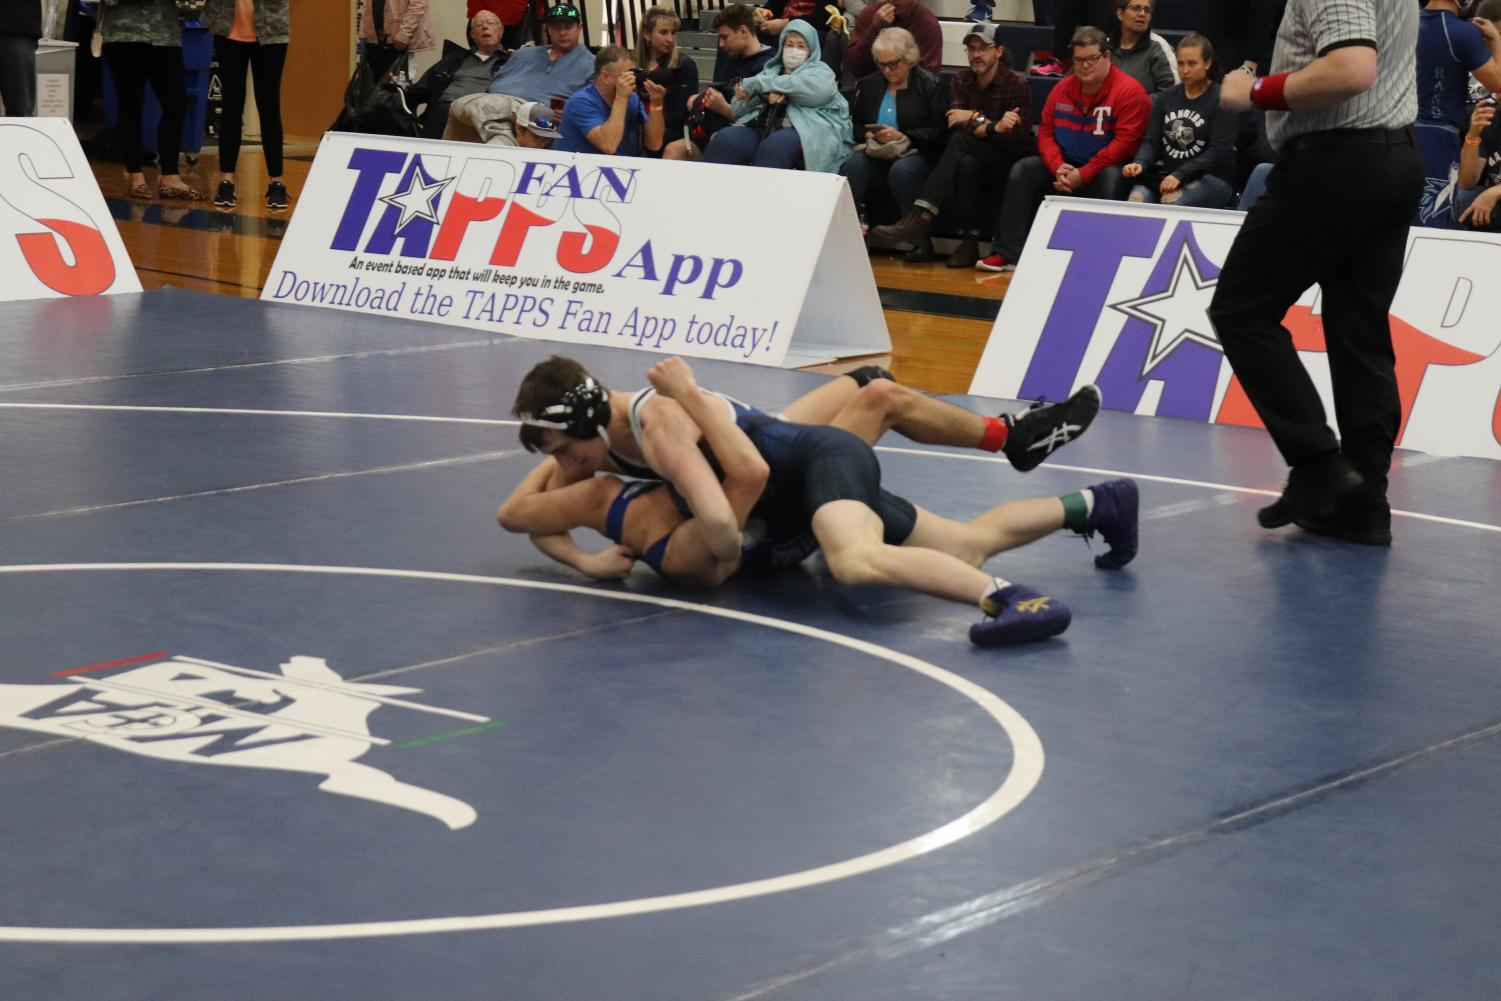 Junior+Patriot+Butler+attempting+to+pin+his+opponent+to+secure+the+win+of+this+match.+